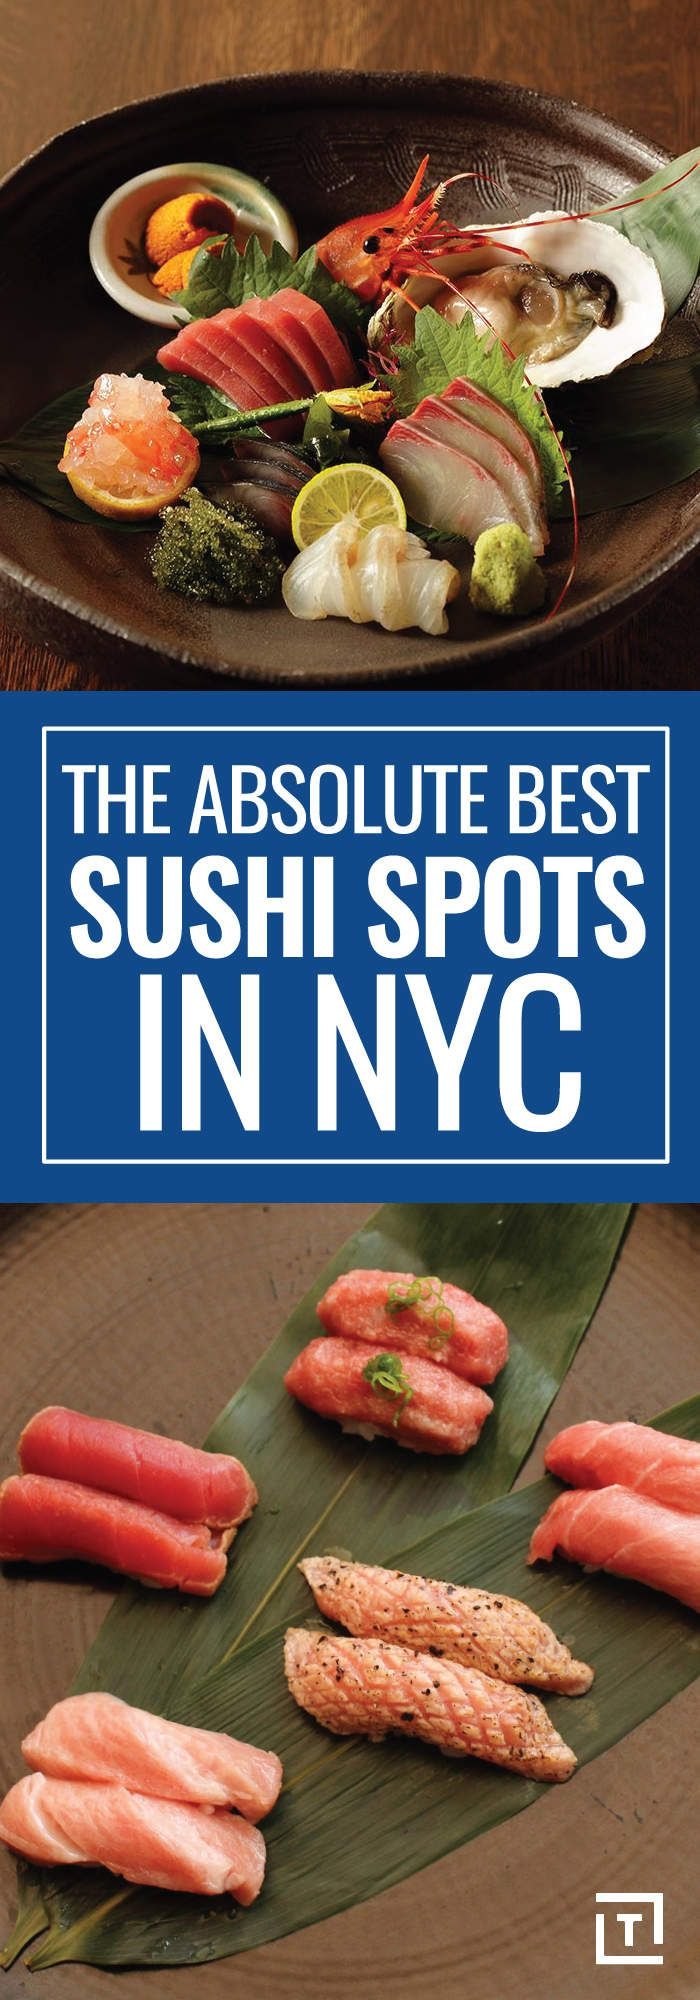 Sushi lovers, refuel for your New York City adventures at one of these top NYC sushi restaurants!